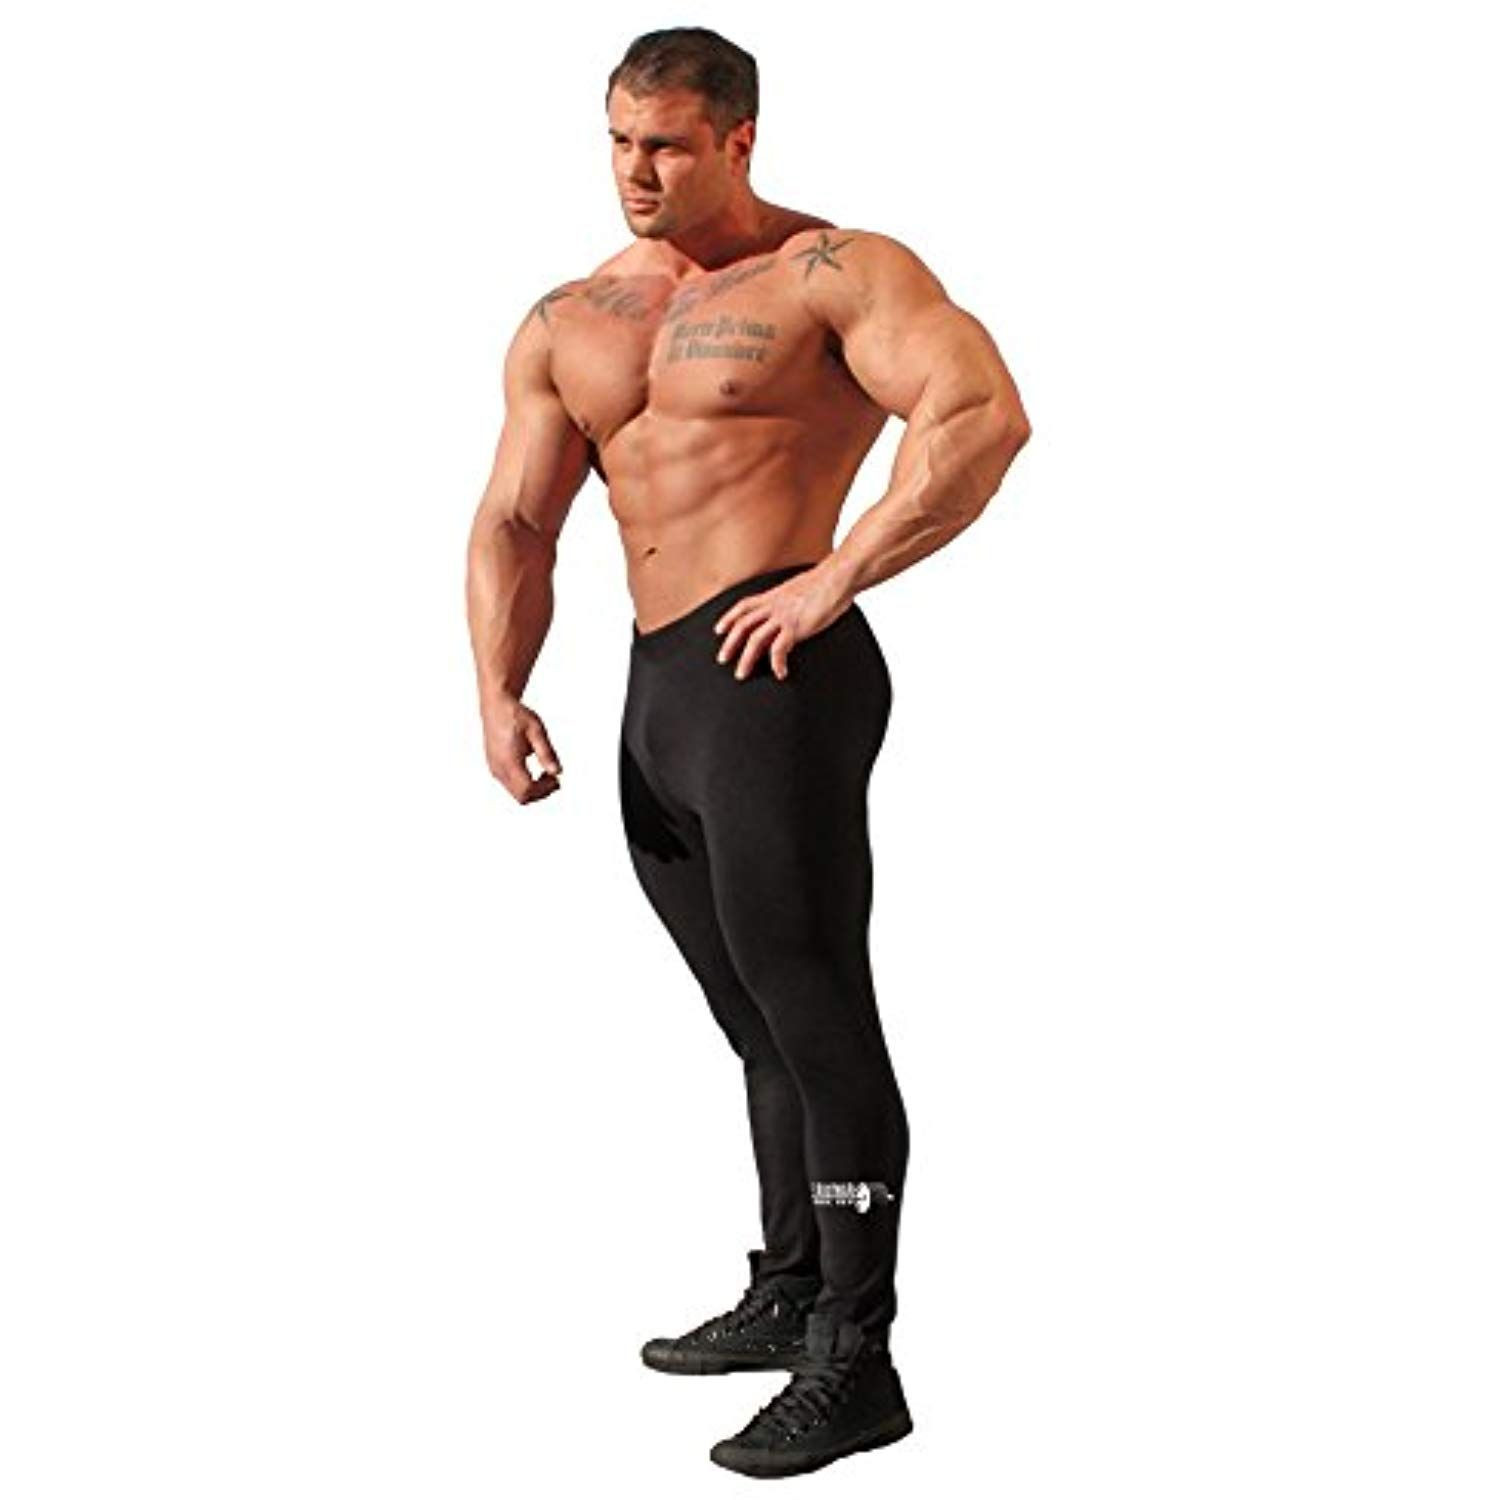 6716e478c7922 Physique Bodyware Men's Bodybuilding Leggings/Tights. Barbell Black. Made  In America. *** You can get additional details at the image link. (This is  an ...